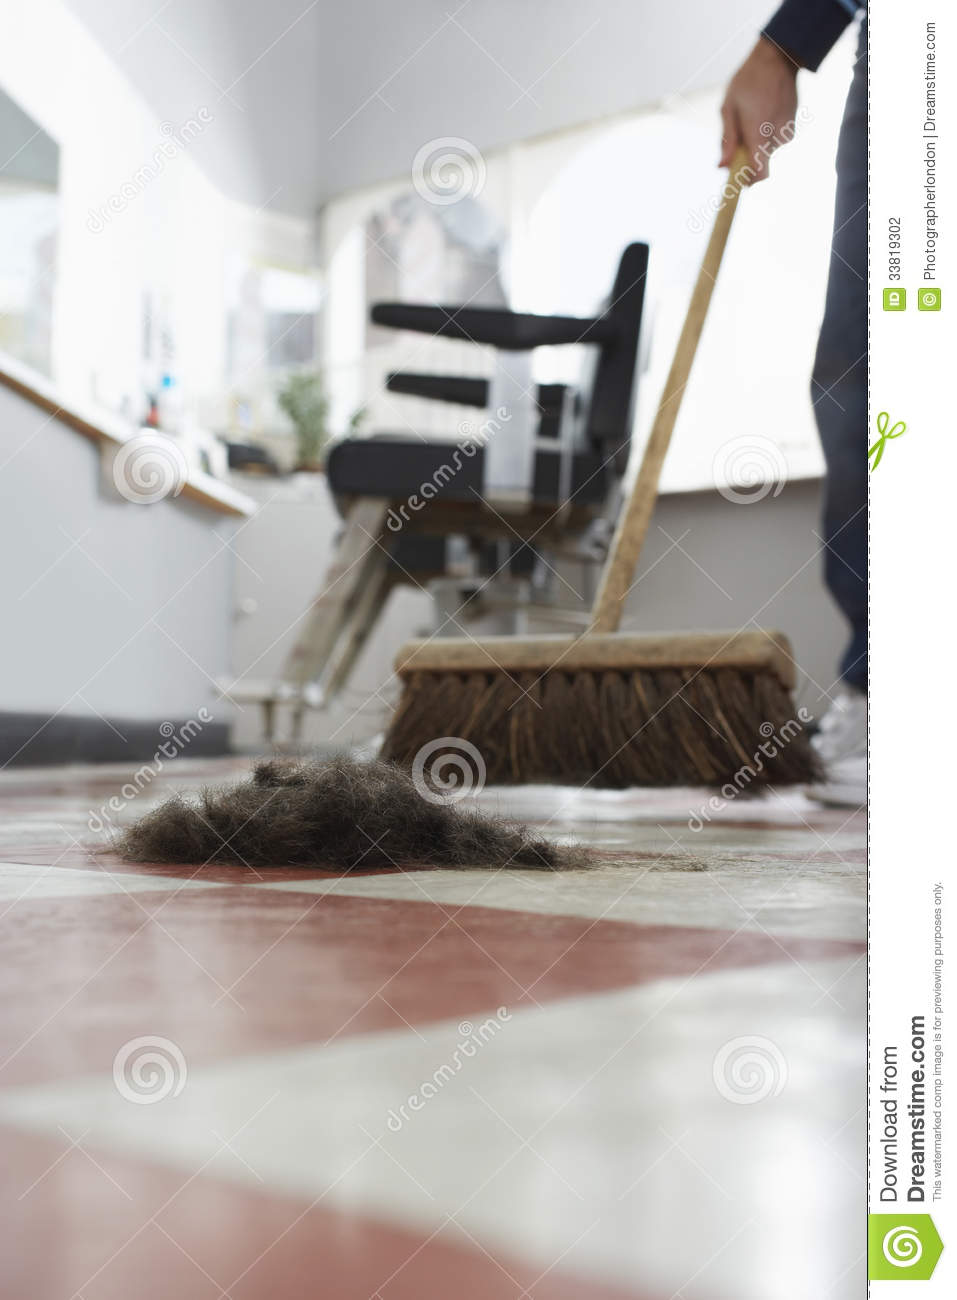 Hairdresser Sweeping Hair Clippings On Floor Stock Photo